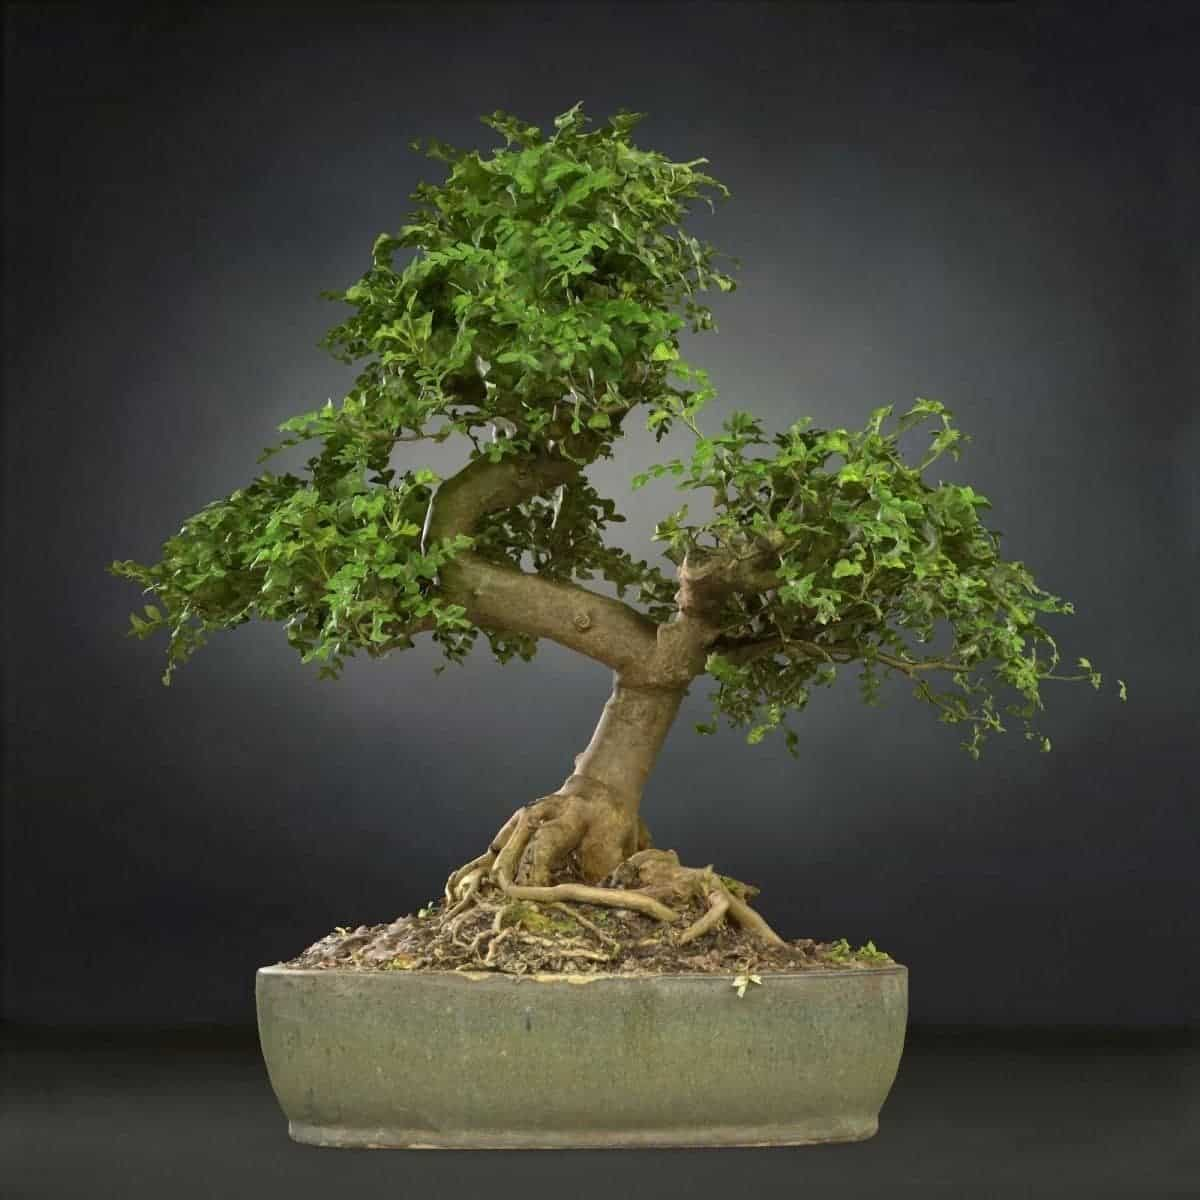 Free 3d model Bonsai Tree 23 VR / AR from Mark Florquin